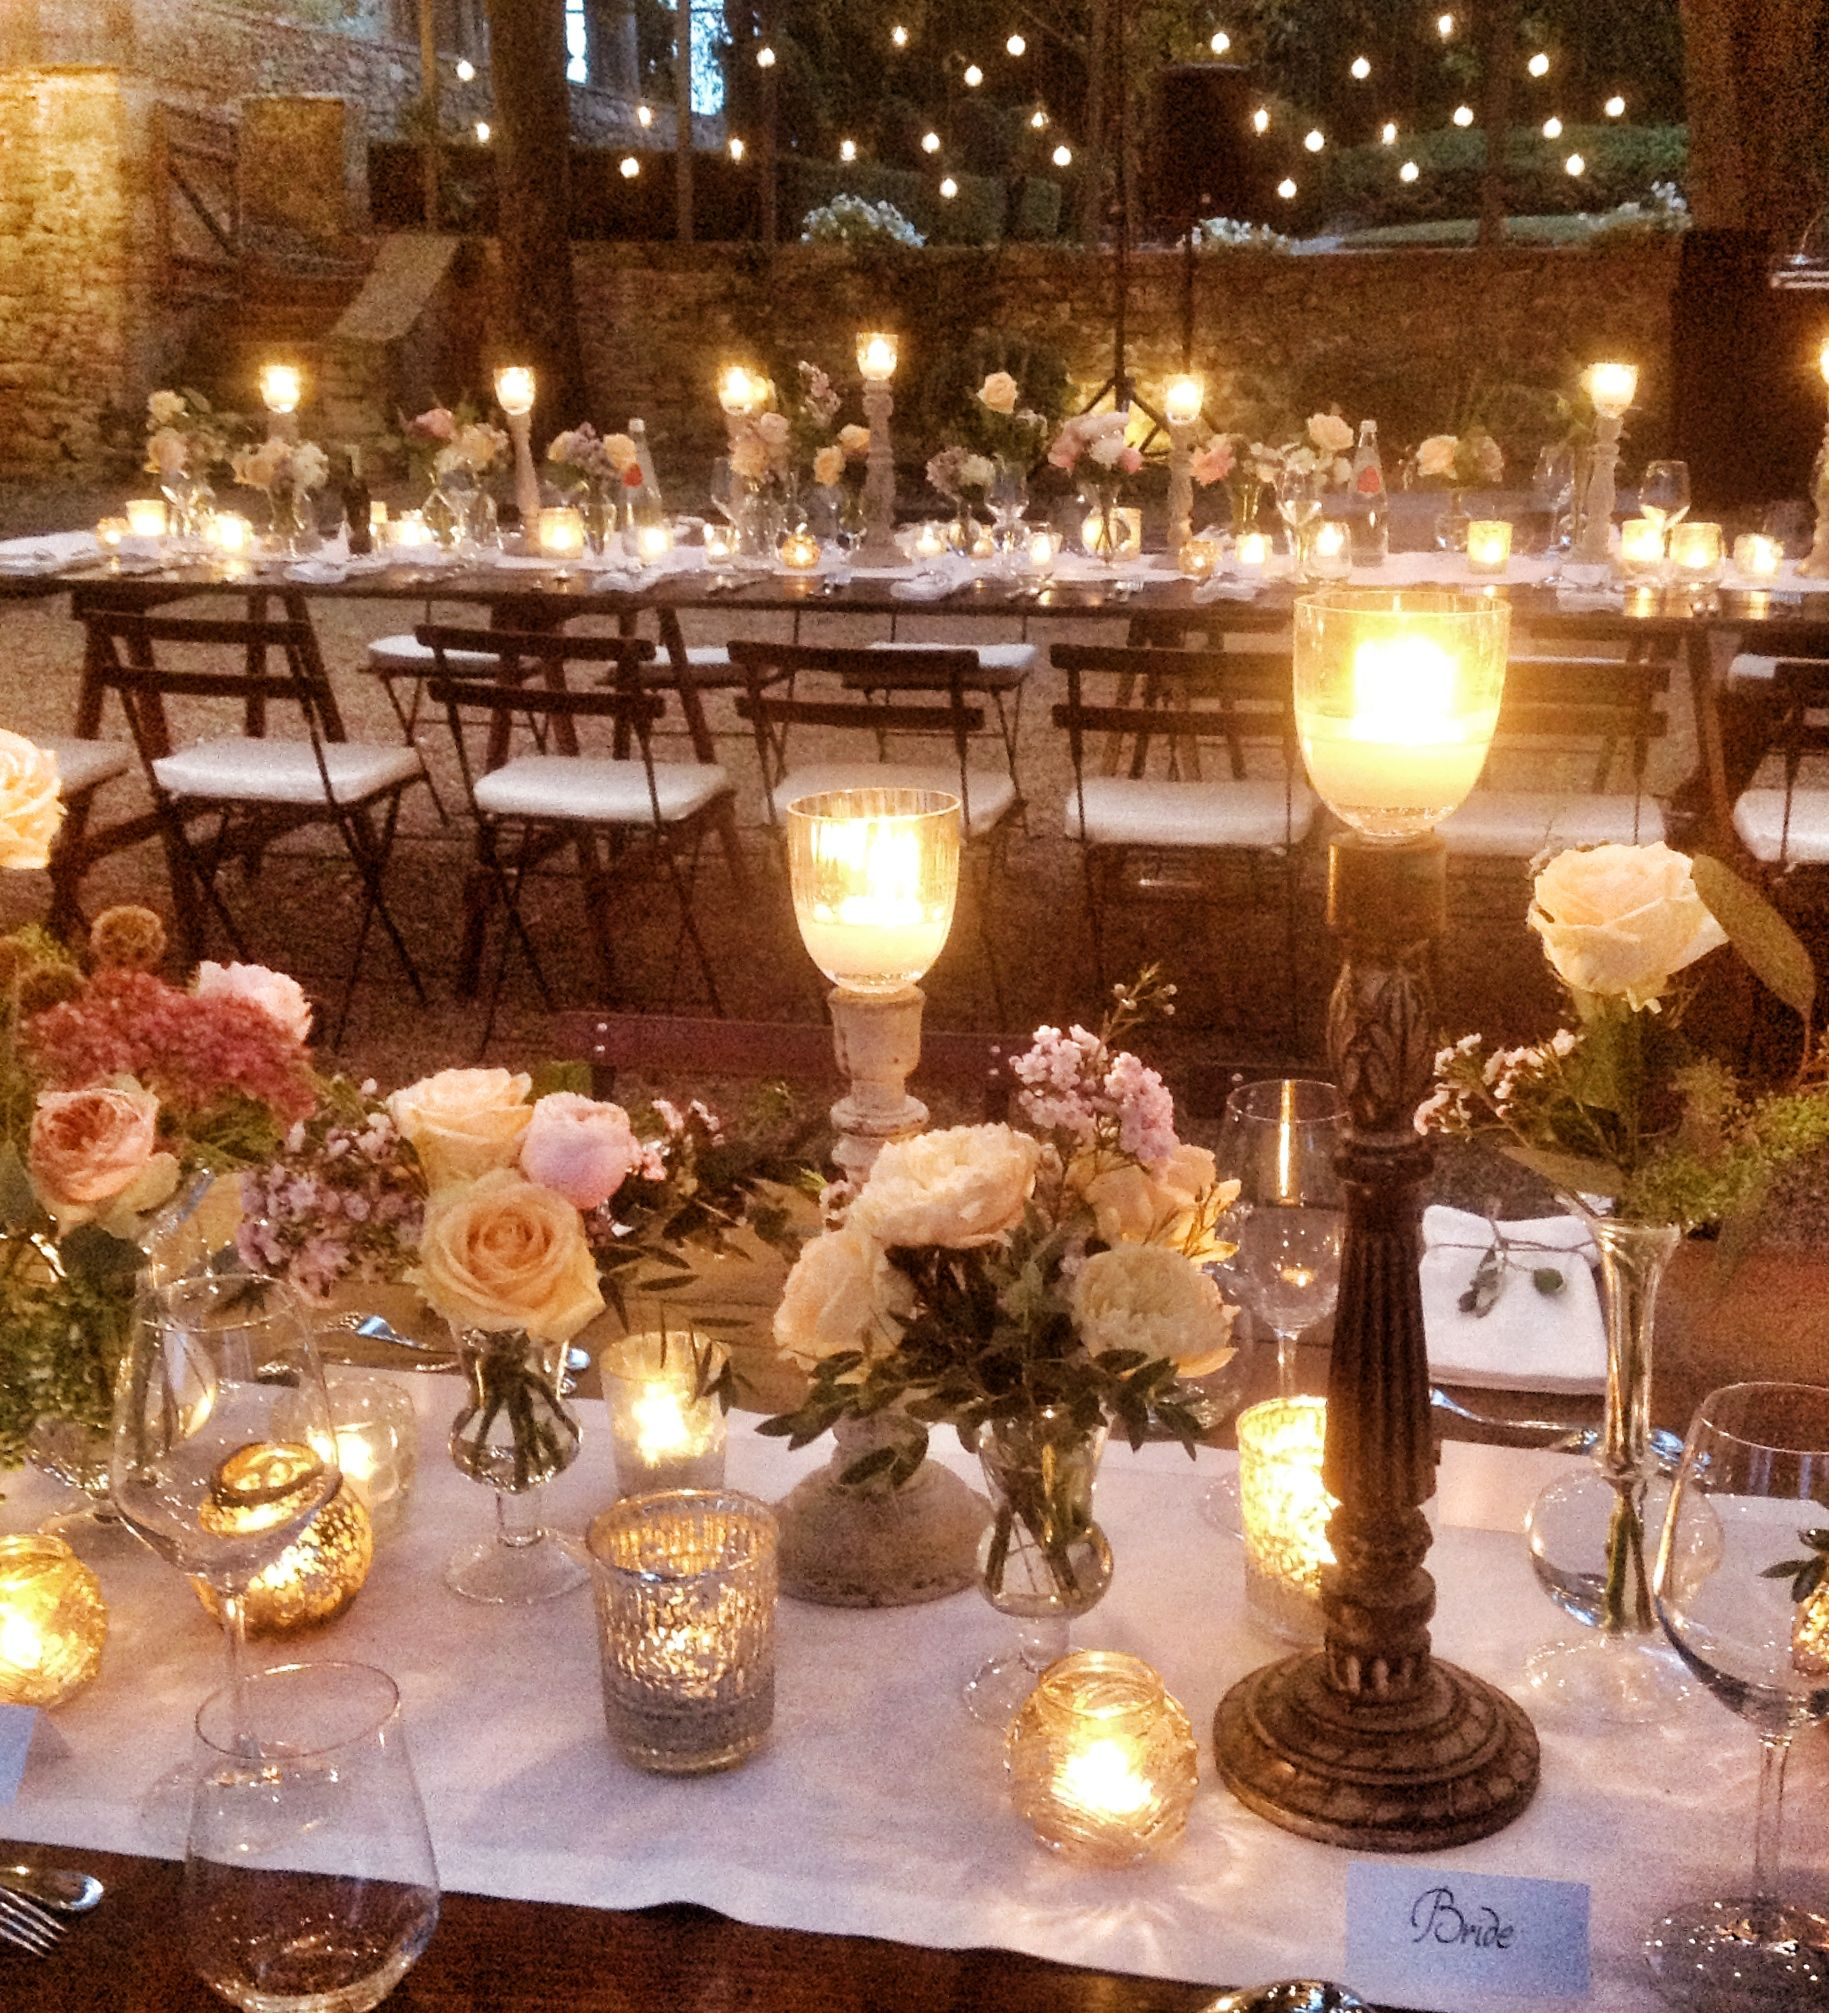 Italian Themed Wedding Ideas: Dinner Set Up In Pure Tuscan Style. Wedding Planning